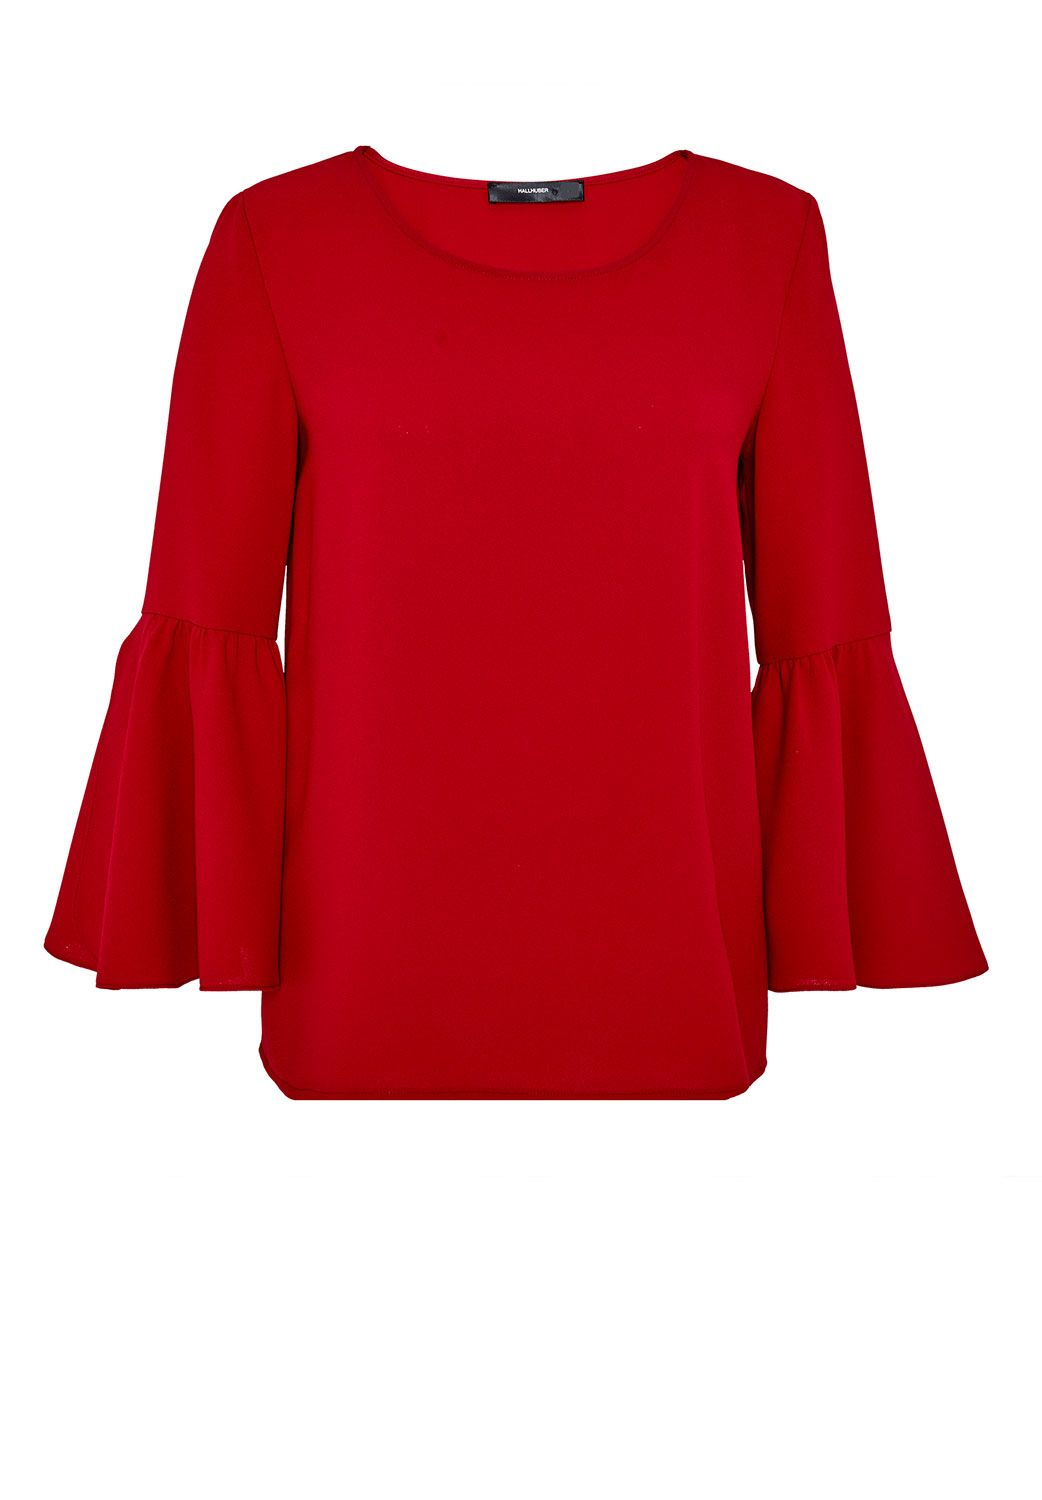 Hallhuber Flounce sleeve blouse top, Red